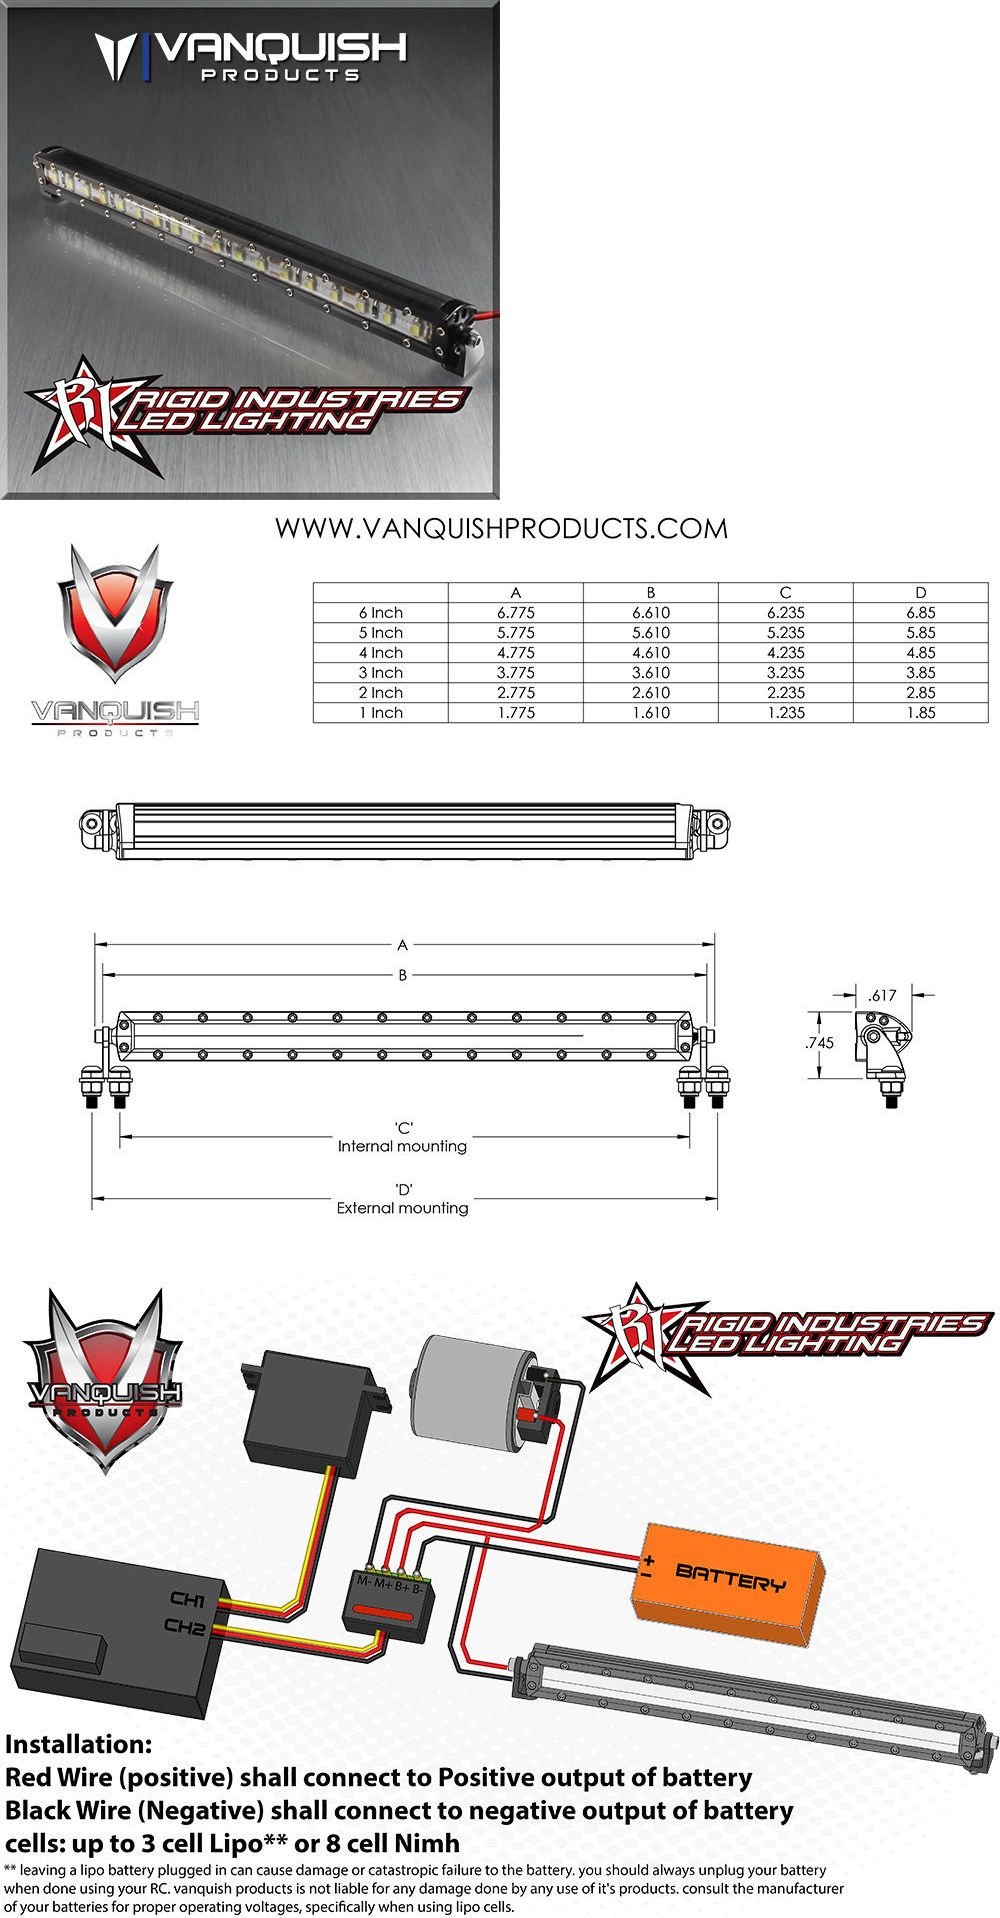 medium resolution of lighting and lamps 182177 vanquish rigid industries 6in led light bar black 1 10 scale axial hpi vps06751 buy it now only 58 99 on ebay lighting